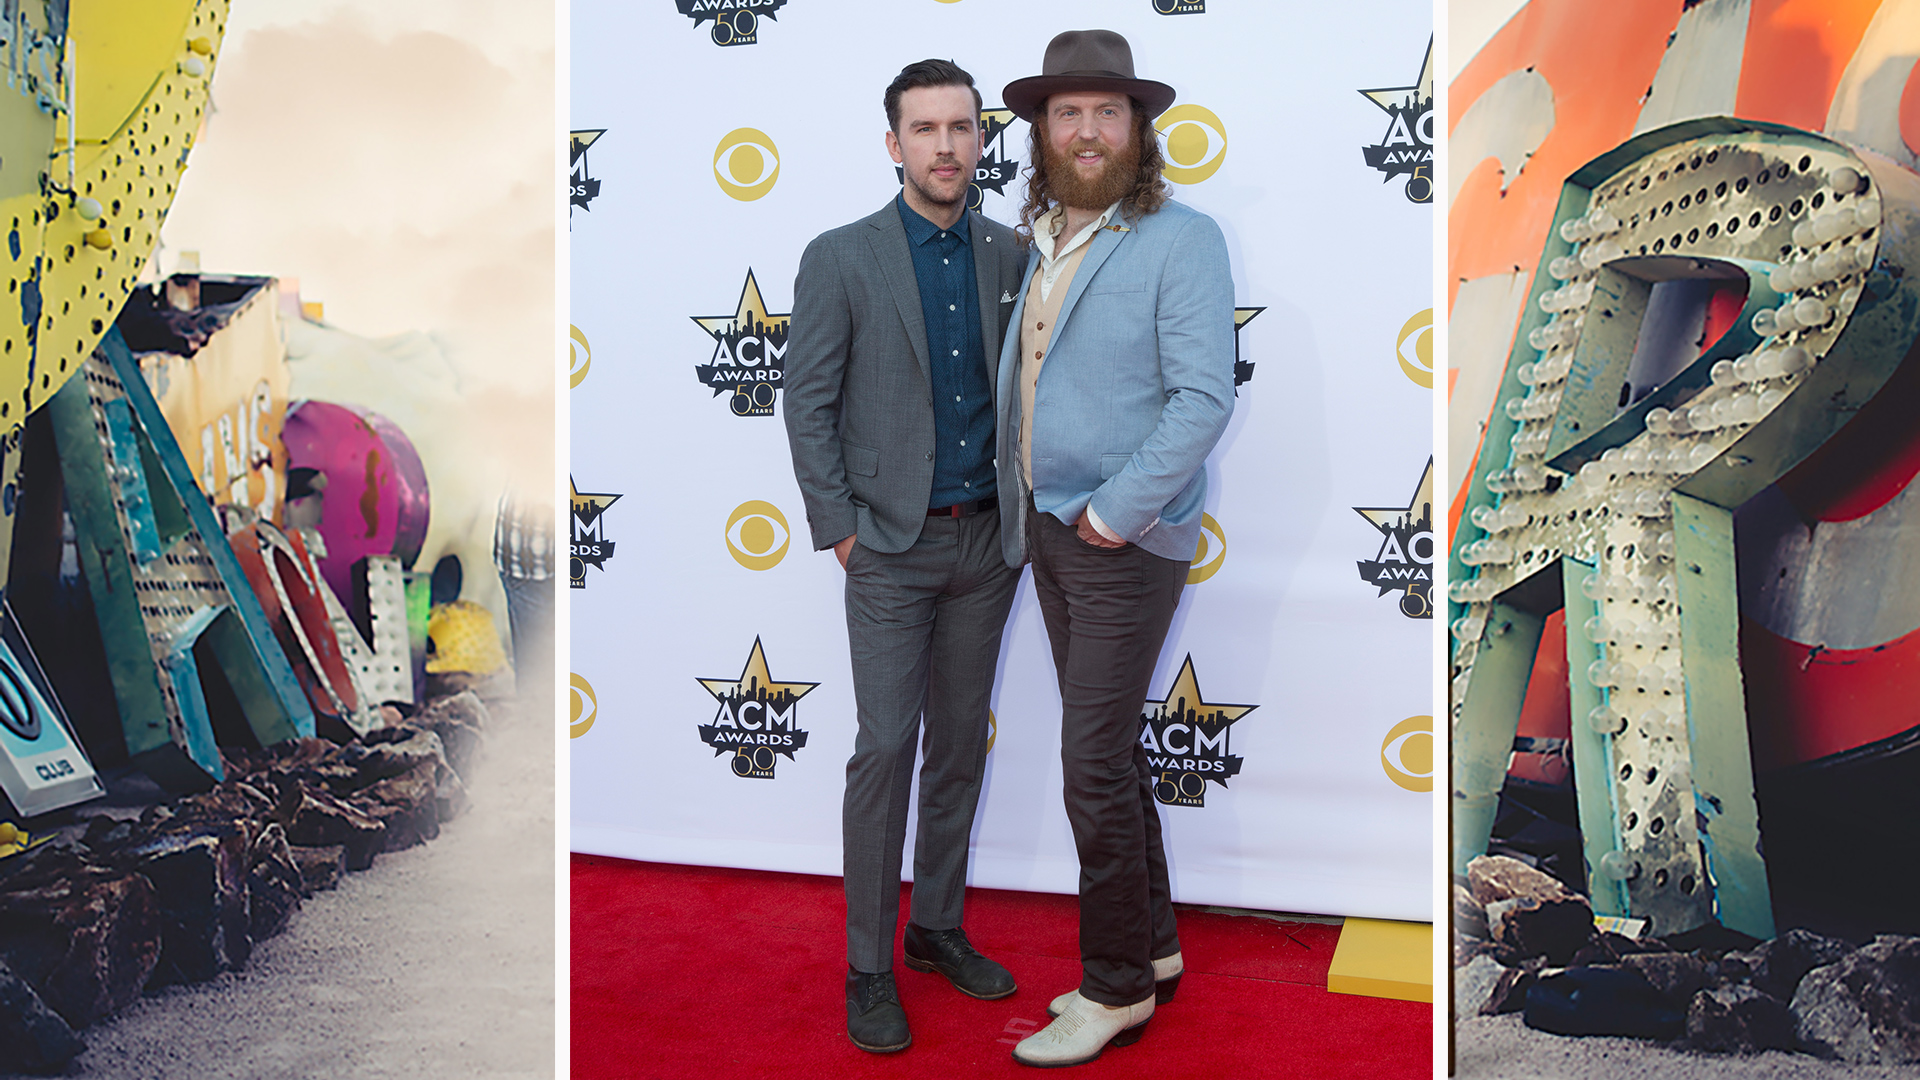 The Brothers Osborne show off their